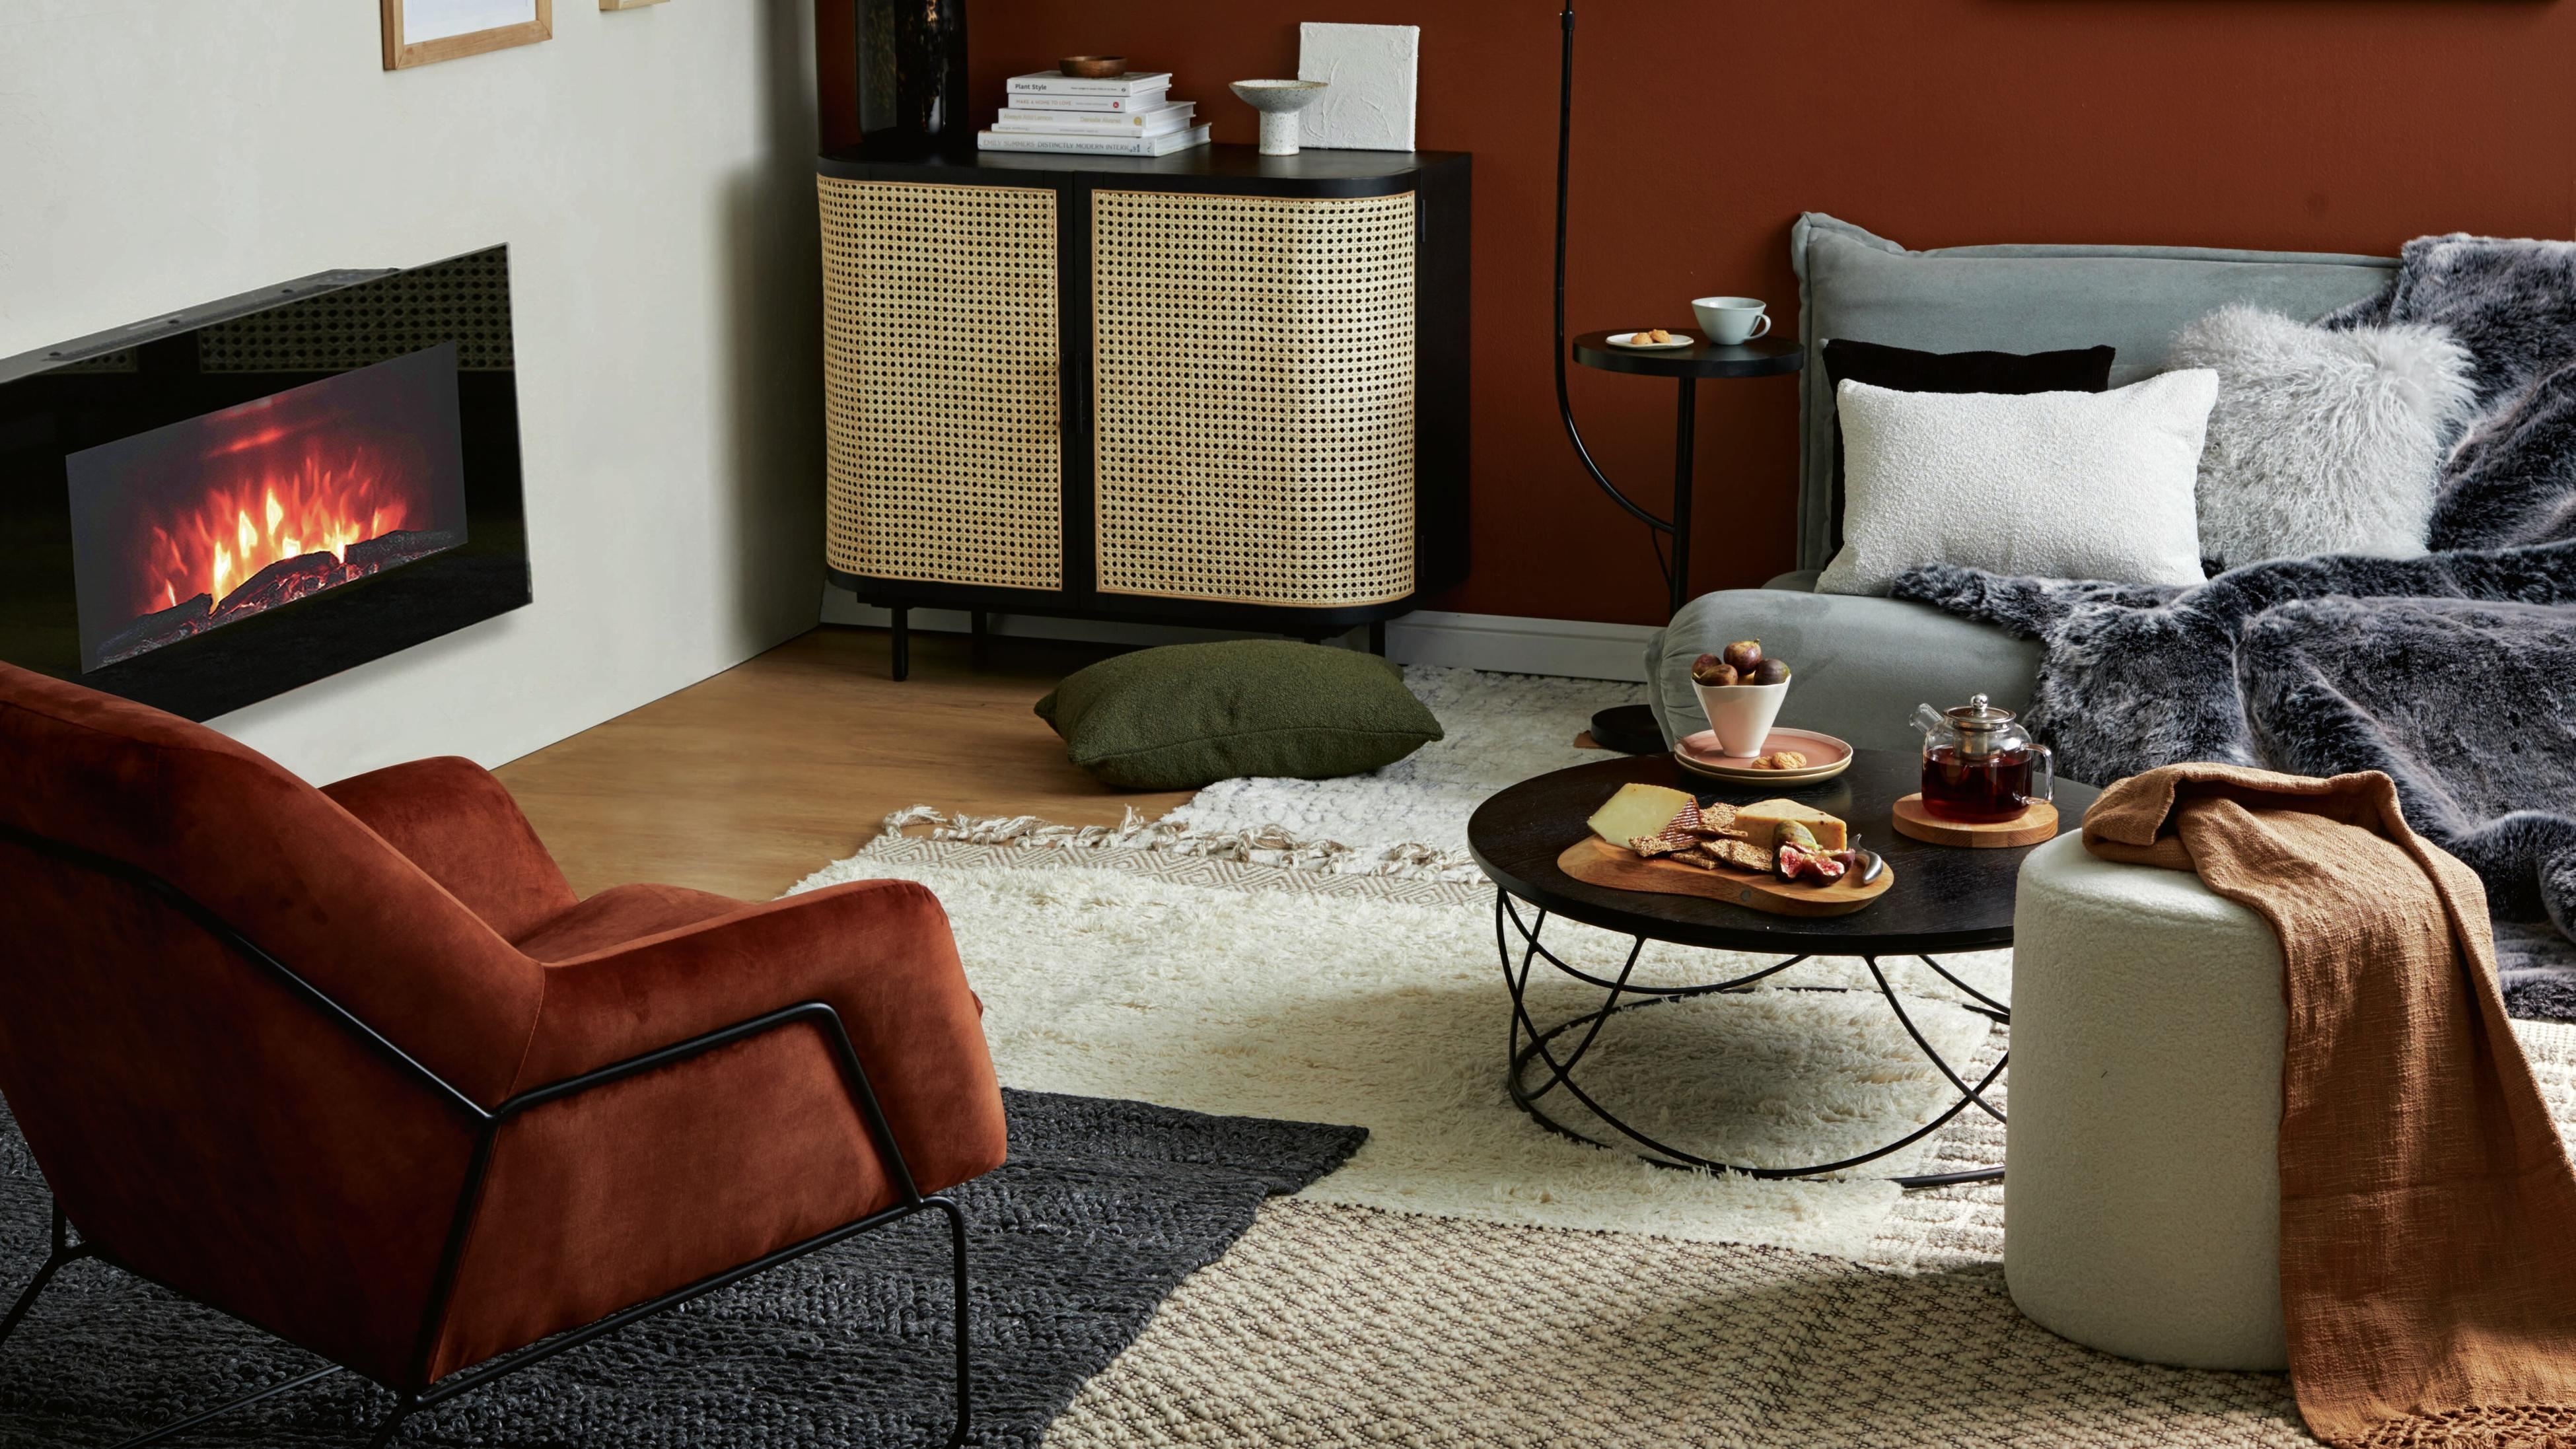 Lounge room styled using rich brown hues. Feature wall painted in Tampico Brown by PPG Paints